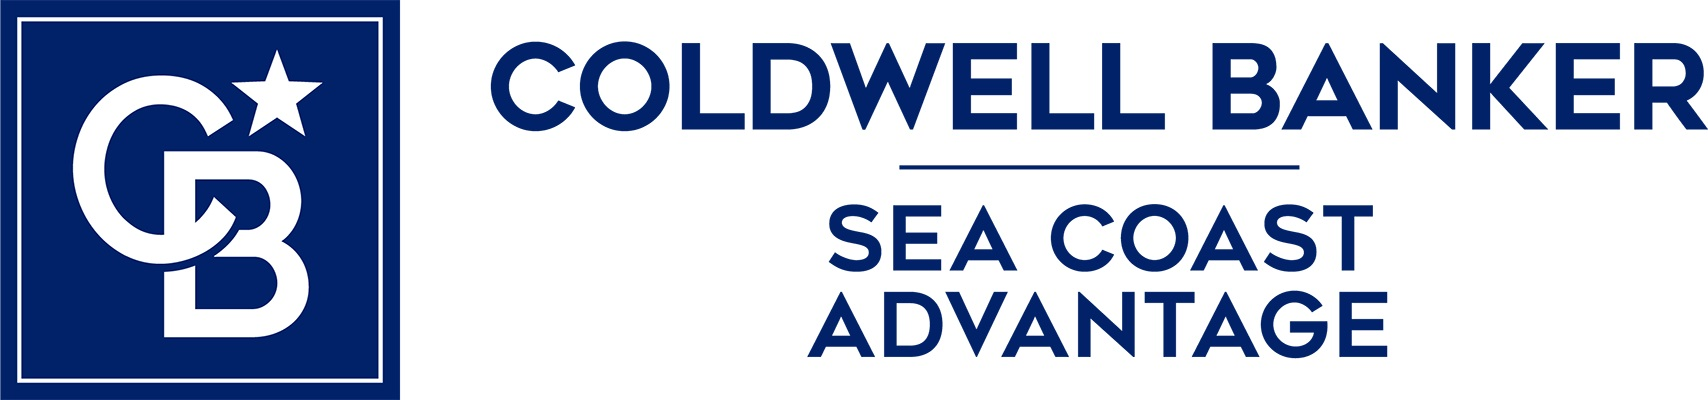 Stephanie Modlin - Coldwell Banker Sea Coast Advantage Realty